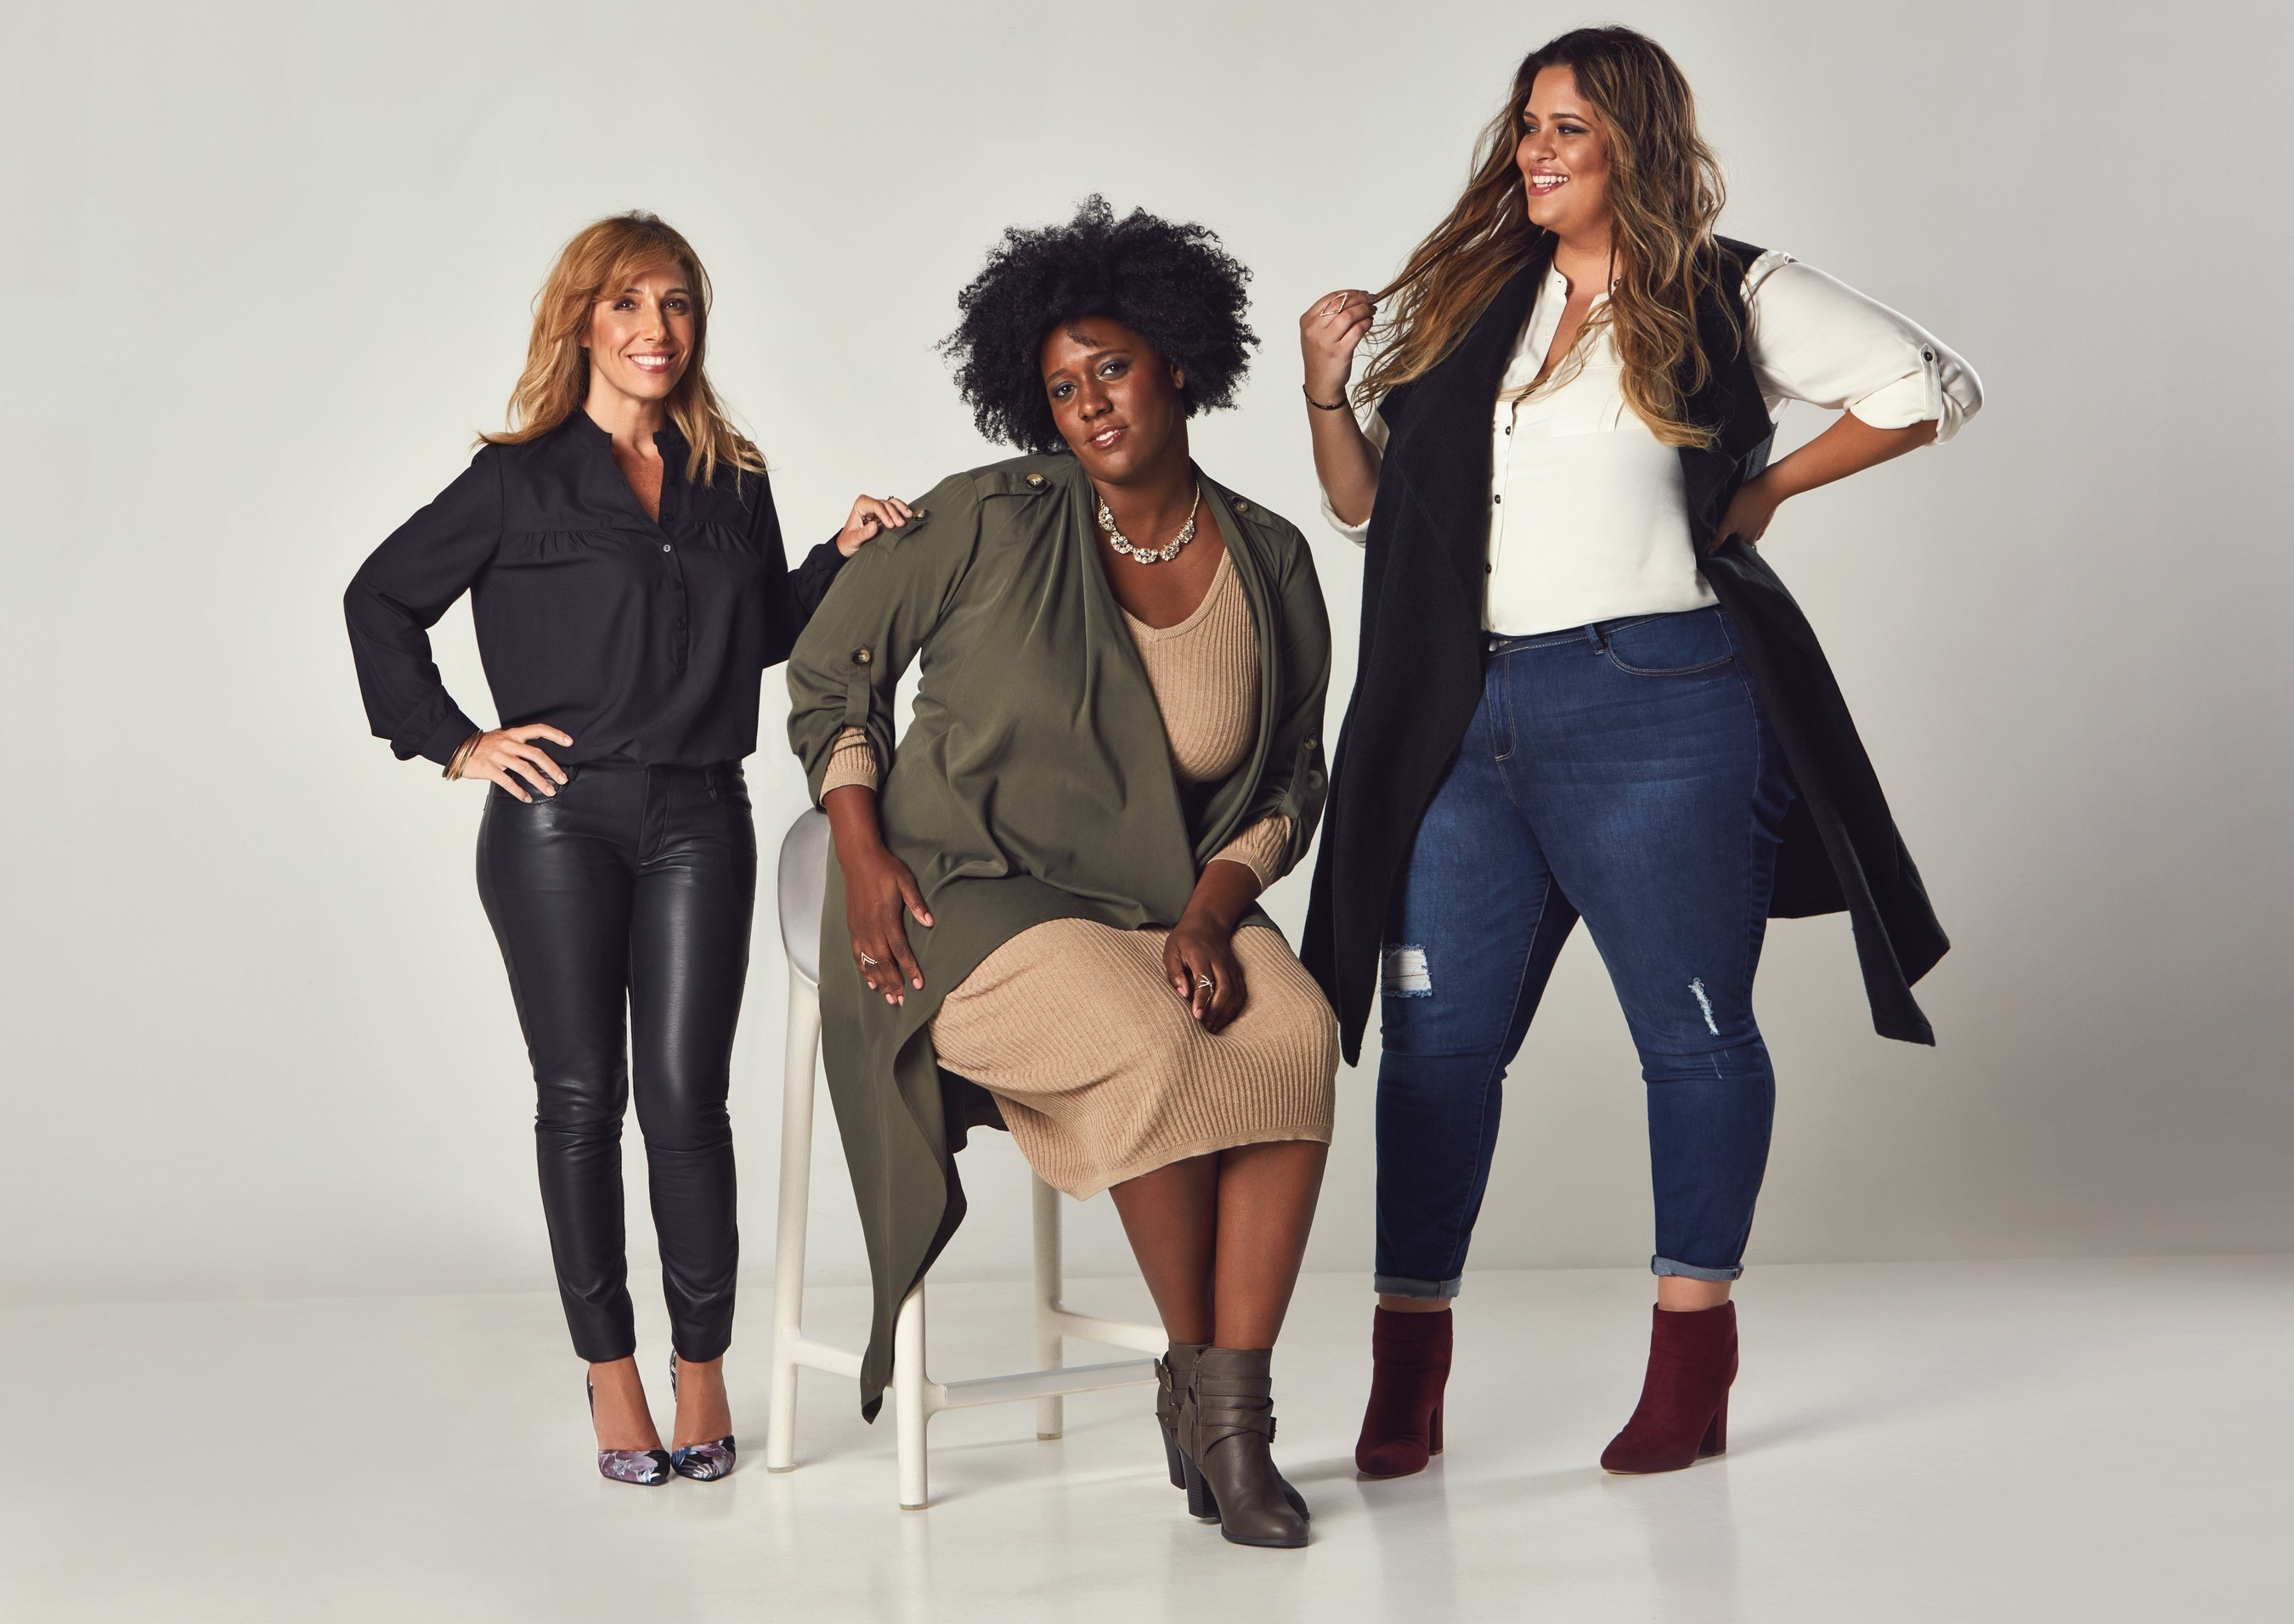 JustFab Launches 'All Size' Campaign, #FABforAll